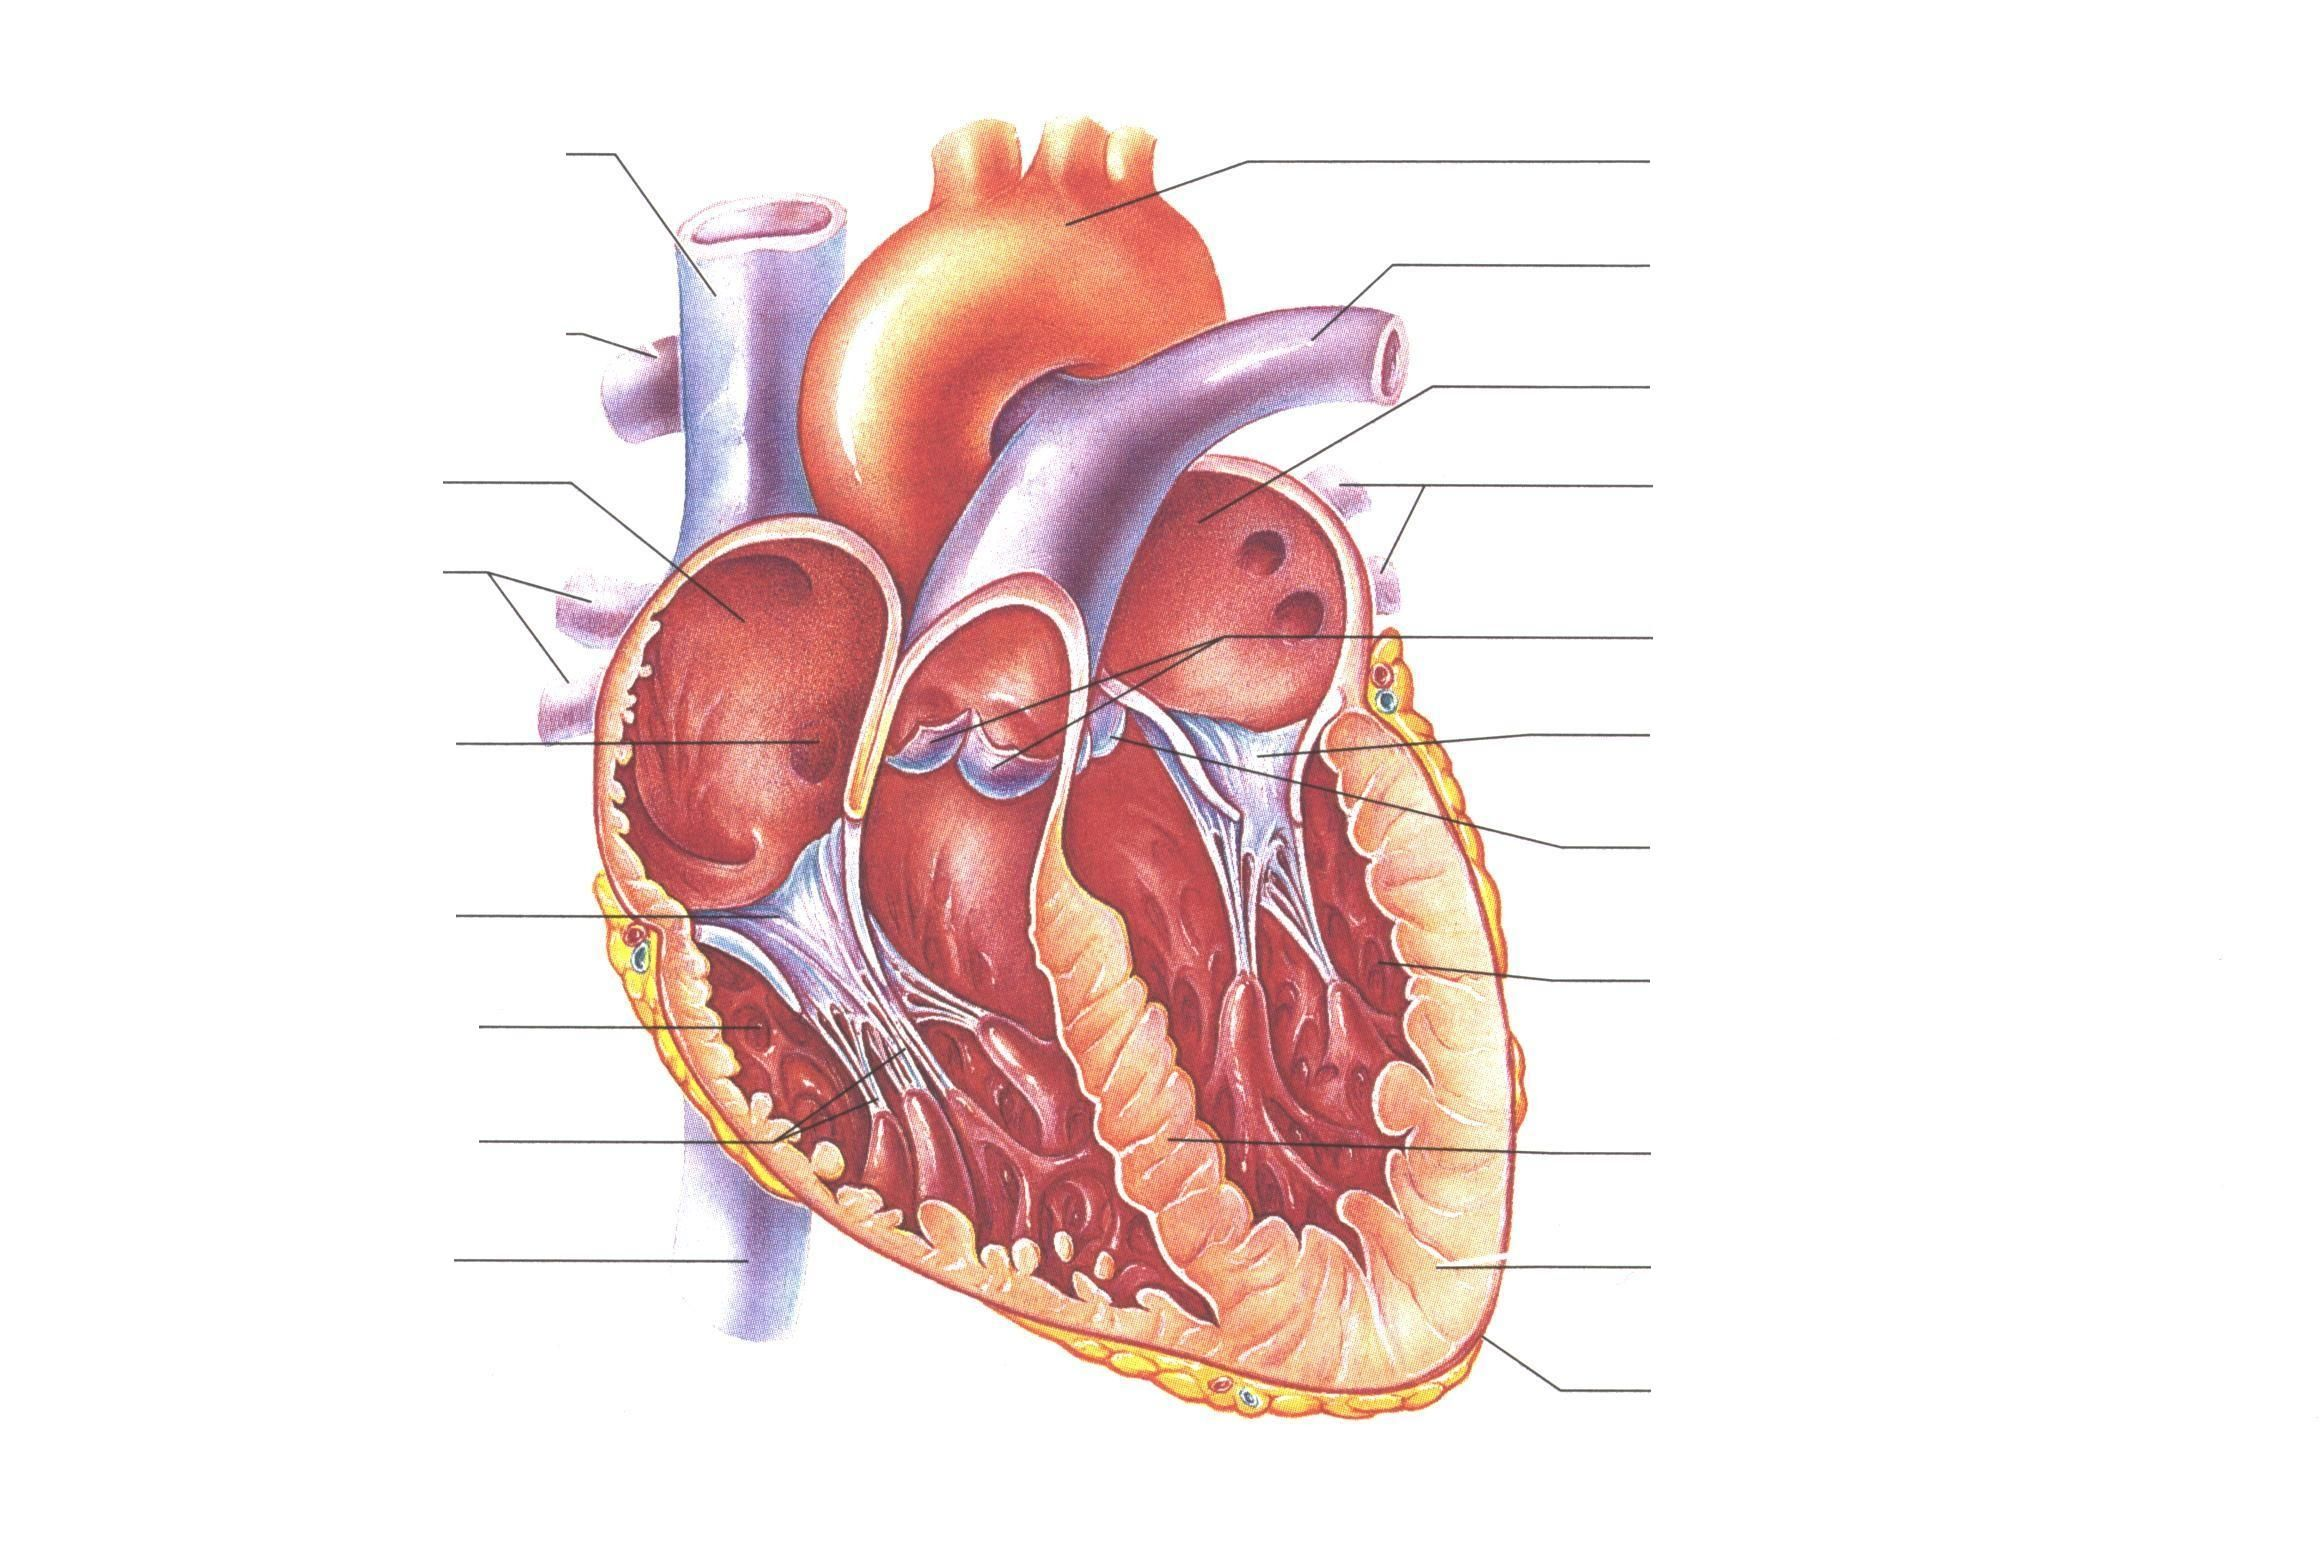 Unlabelled Diagram Of The Heart# - ClipArt Best Human Heart Unlabeled